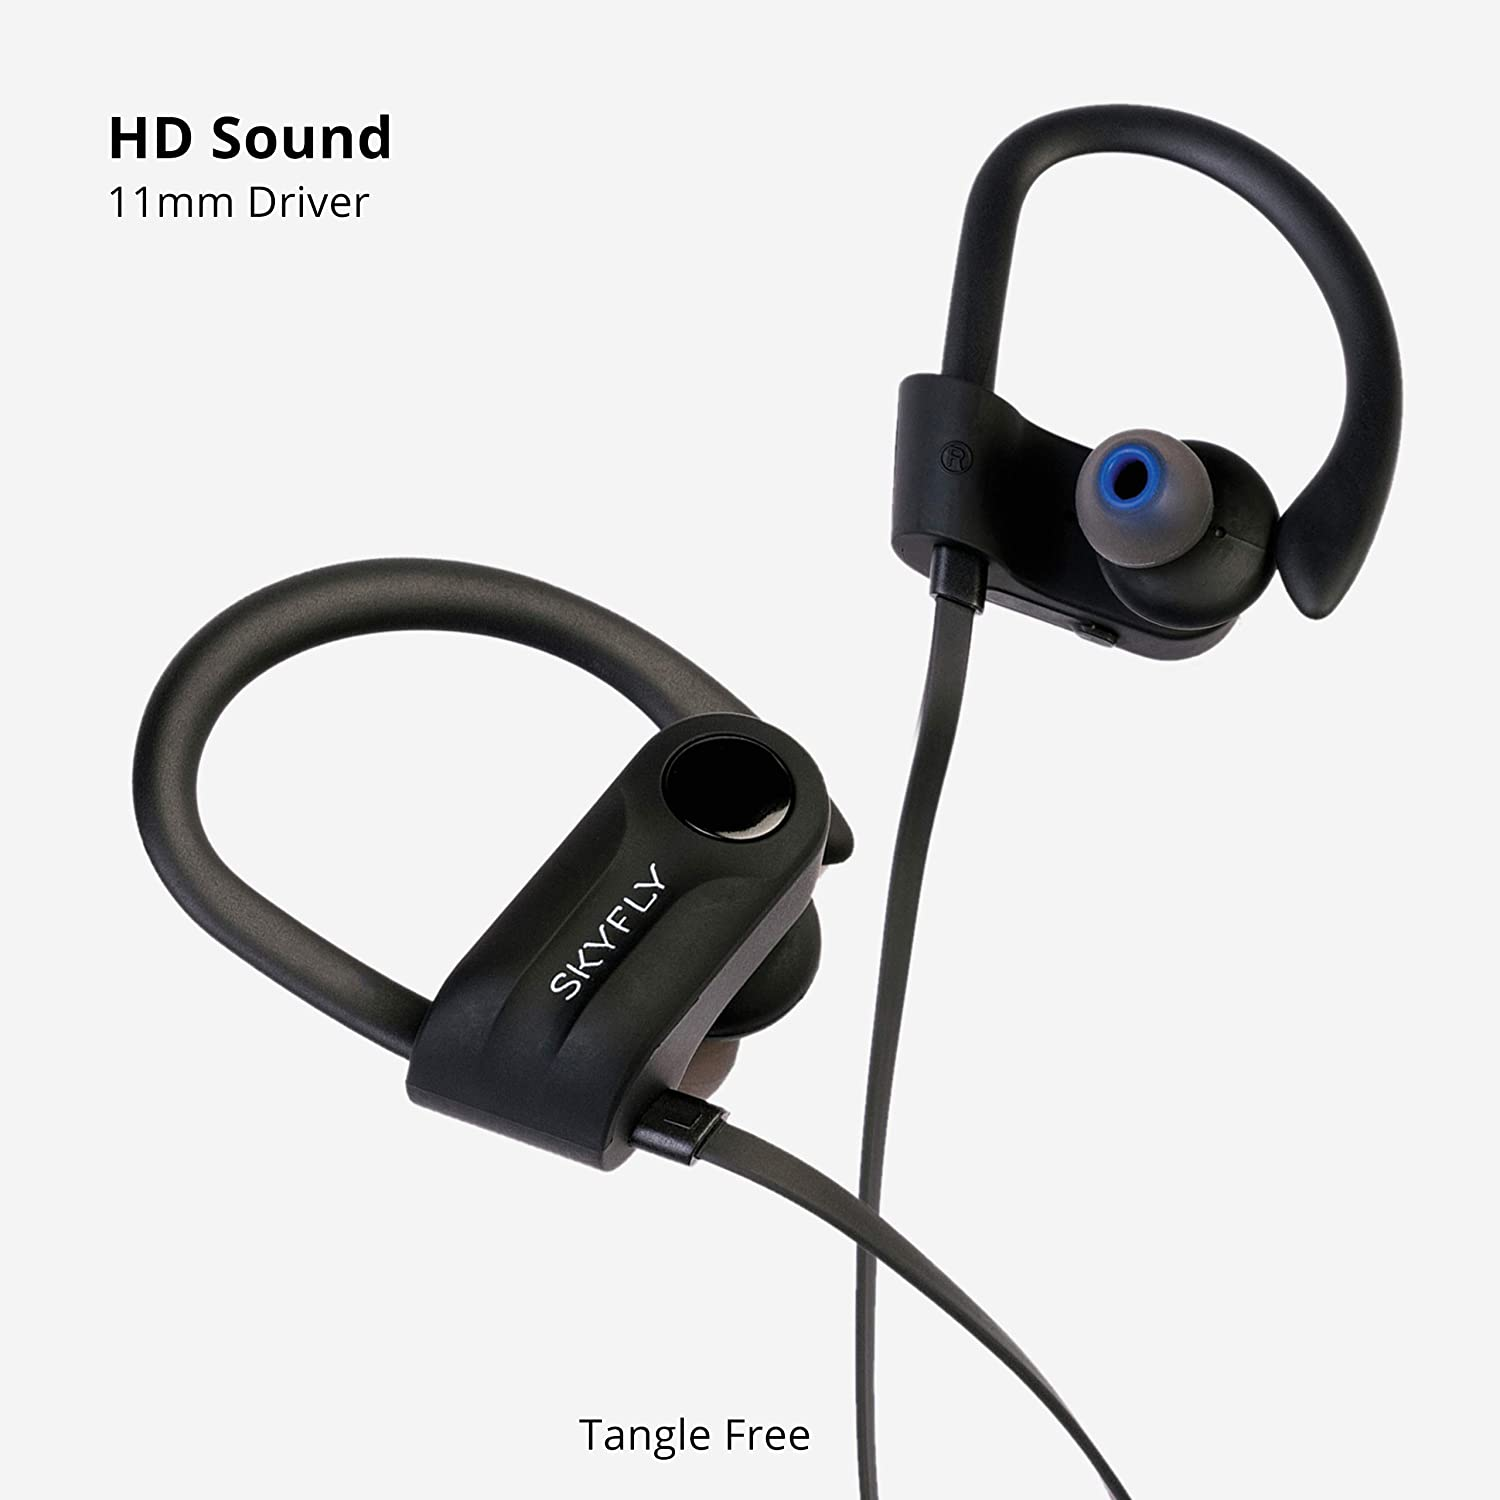 Skyfly Cruze A2 Sports Earphone with BT 5.0 || Free Elegant Hard Carry Case || IPX5 - Sweat Proof and Water Resistant || Bluetooth earphones with HD Stereo sound and Extra Bass || Wireless Earphone with Mic for hands free calling